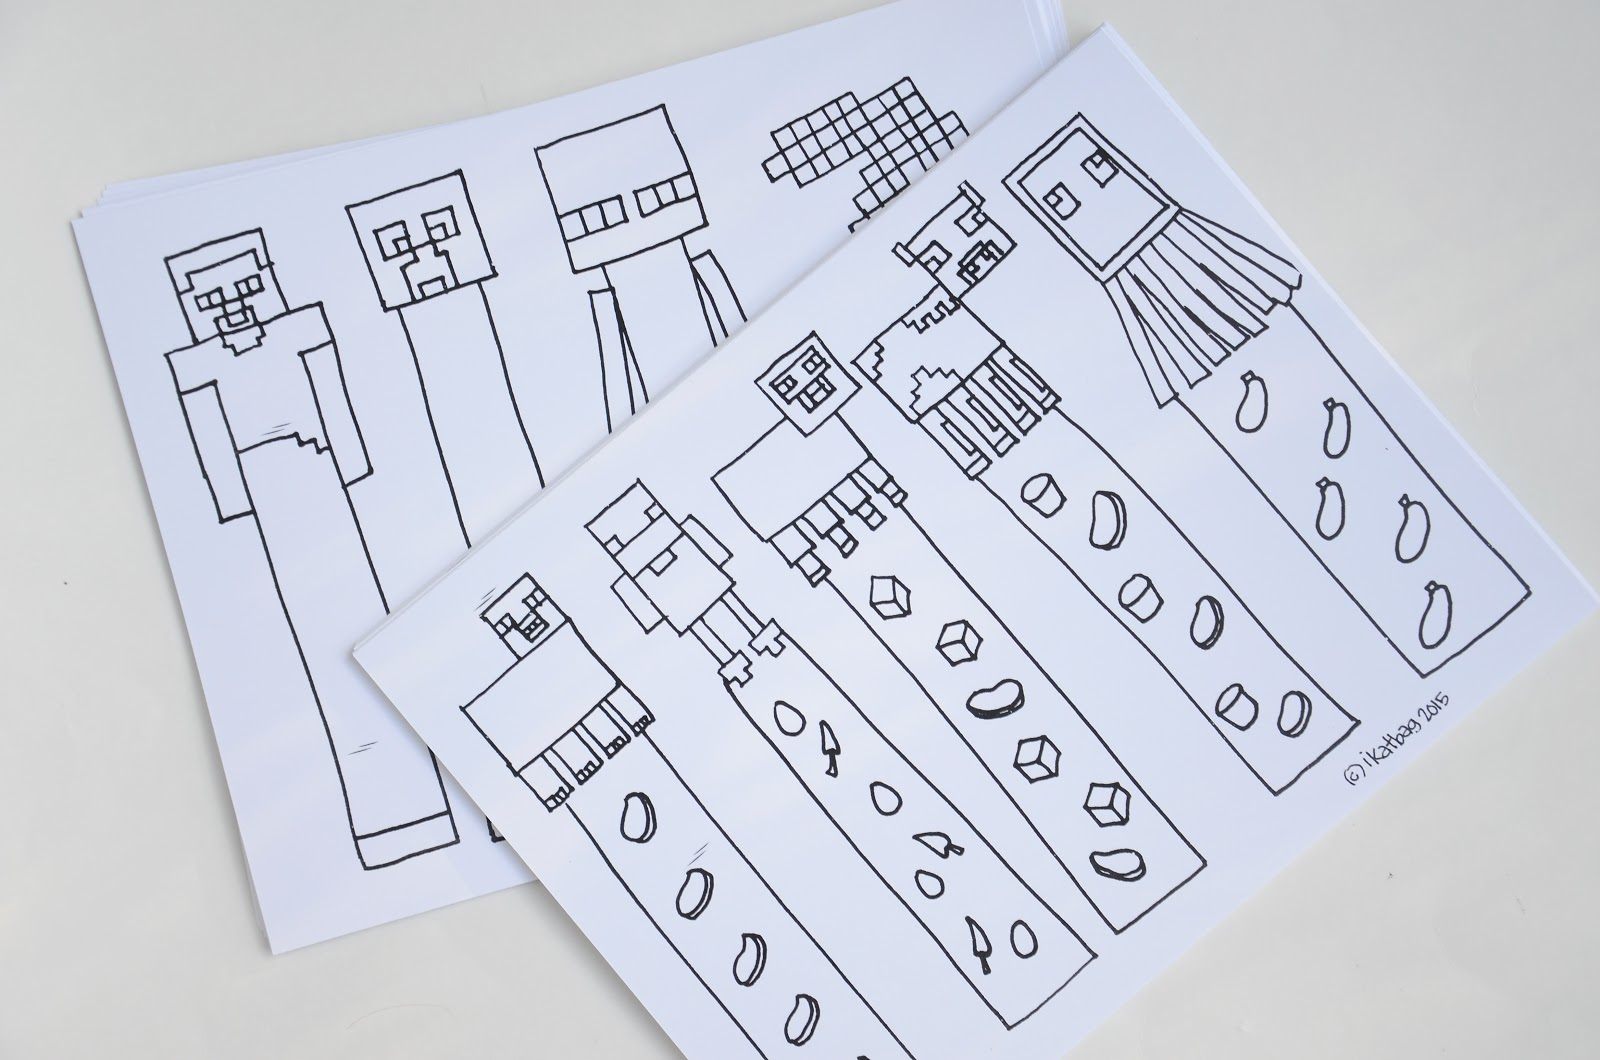 photo about Minecraft Bookmarks Printable titled ikat bag: Minecraft Occasion: Coloring Bookmarks, Composing